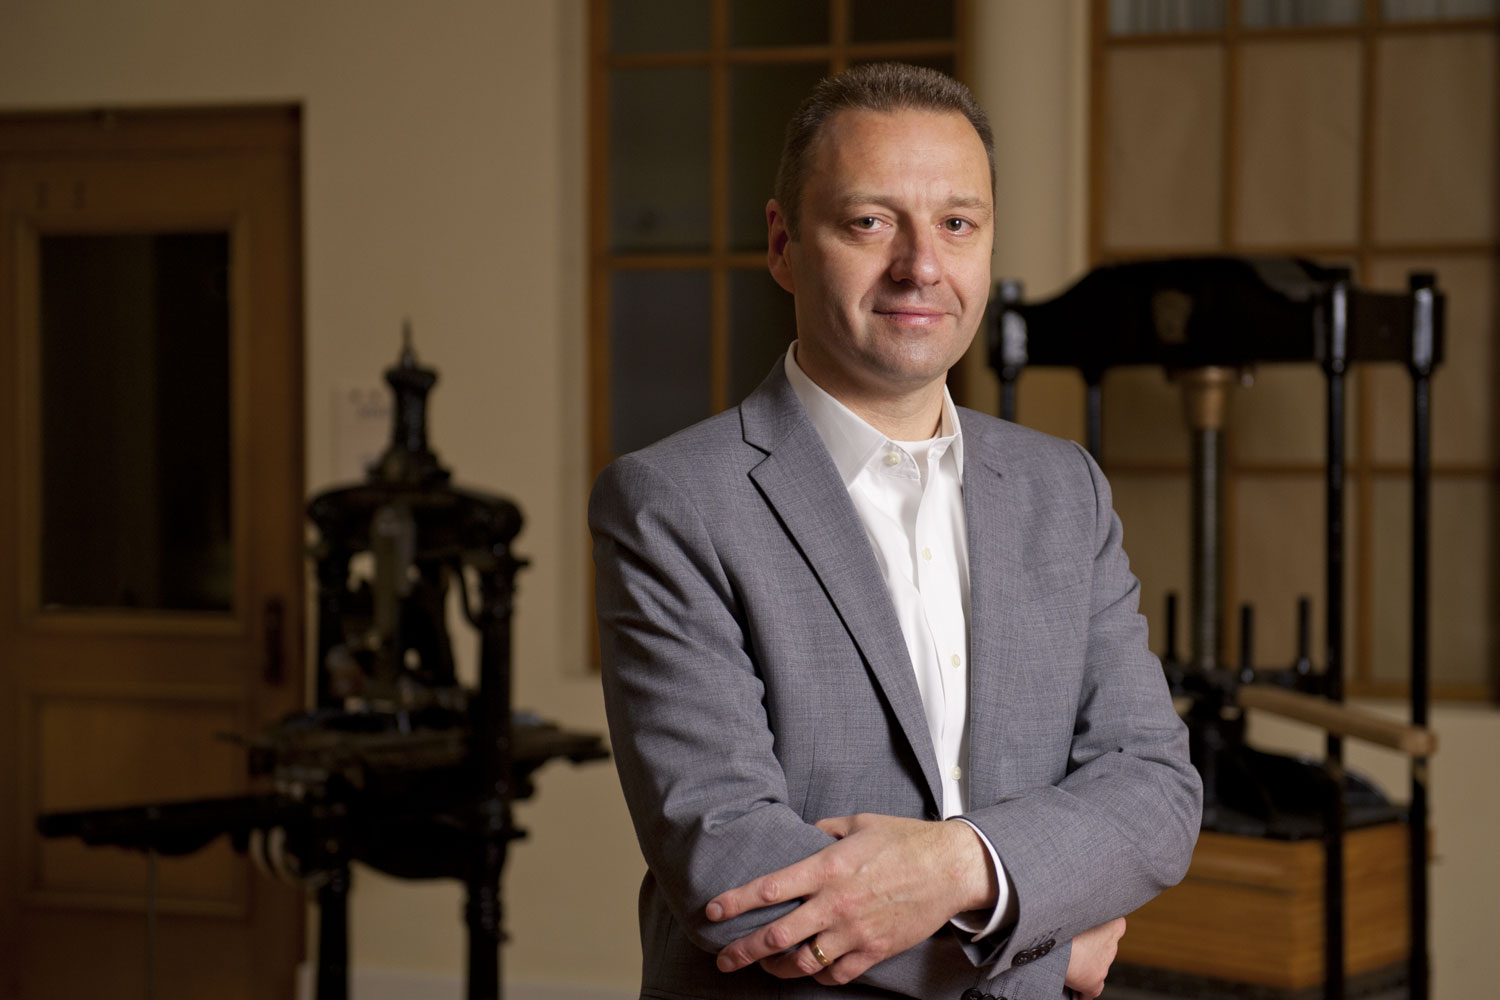 portrait of Alan Harvey, director of Stanford University Press, with old hand-operated printing presses in background